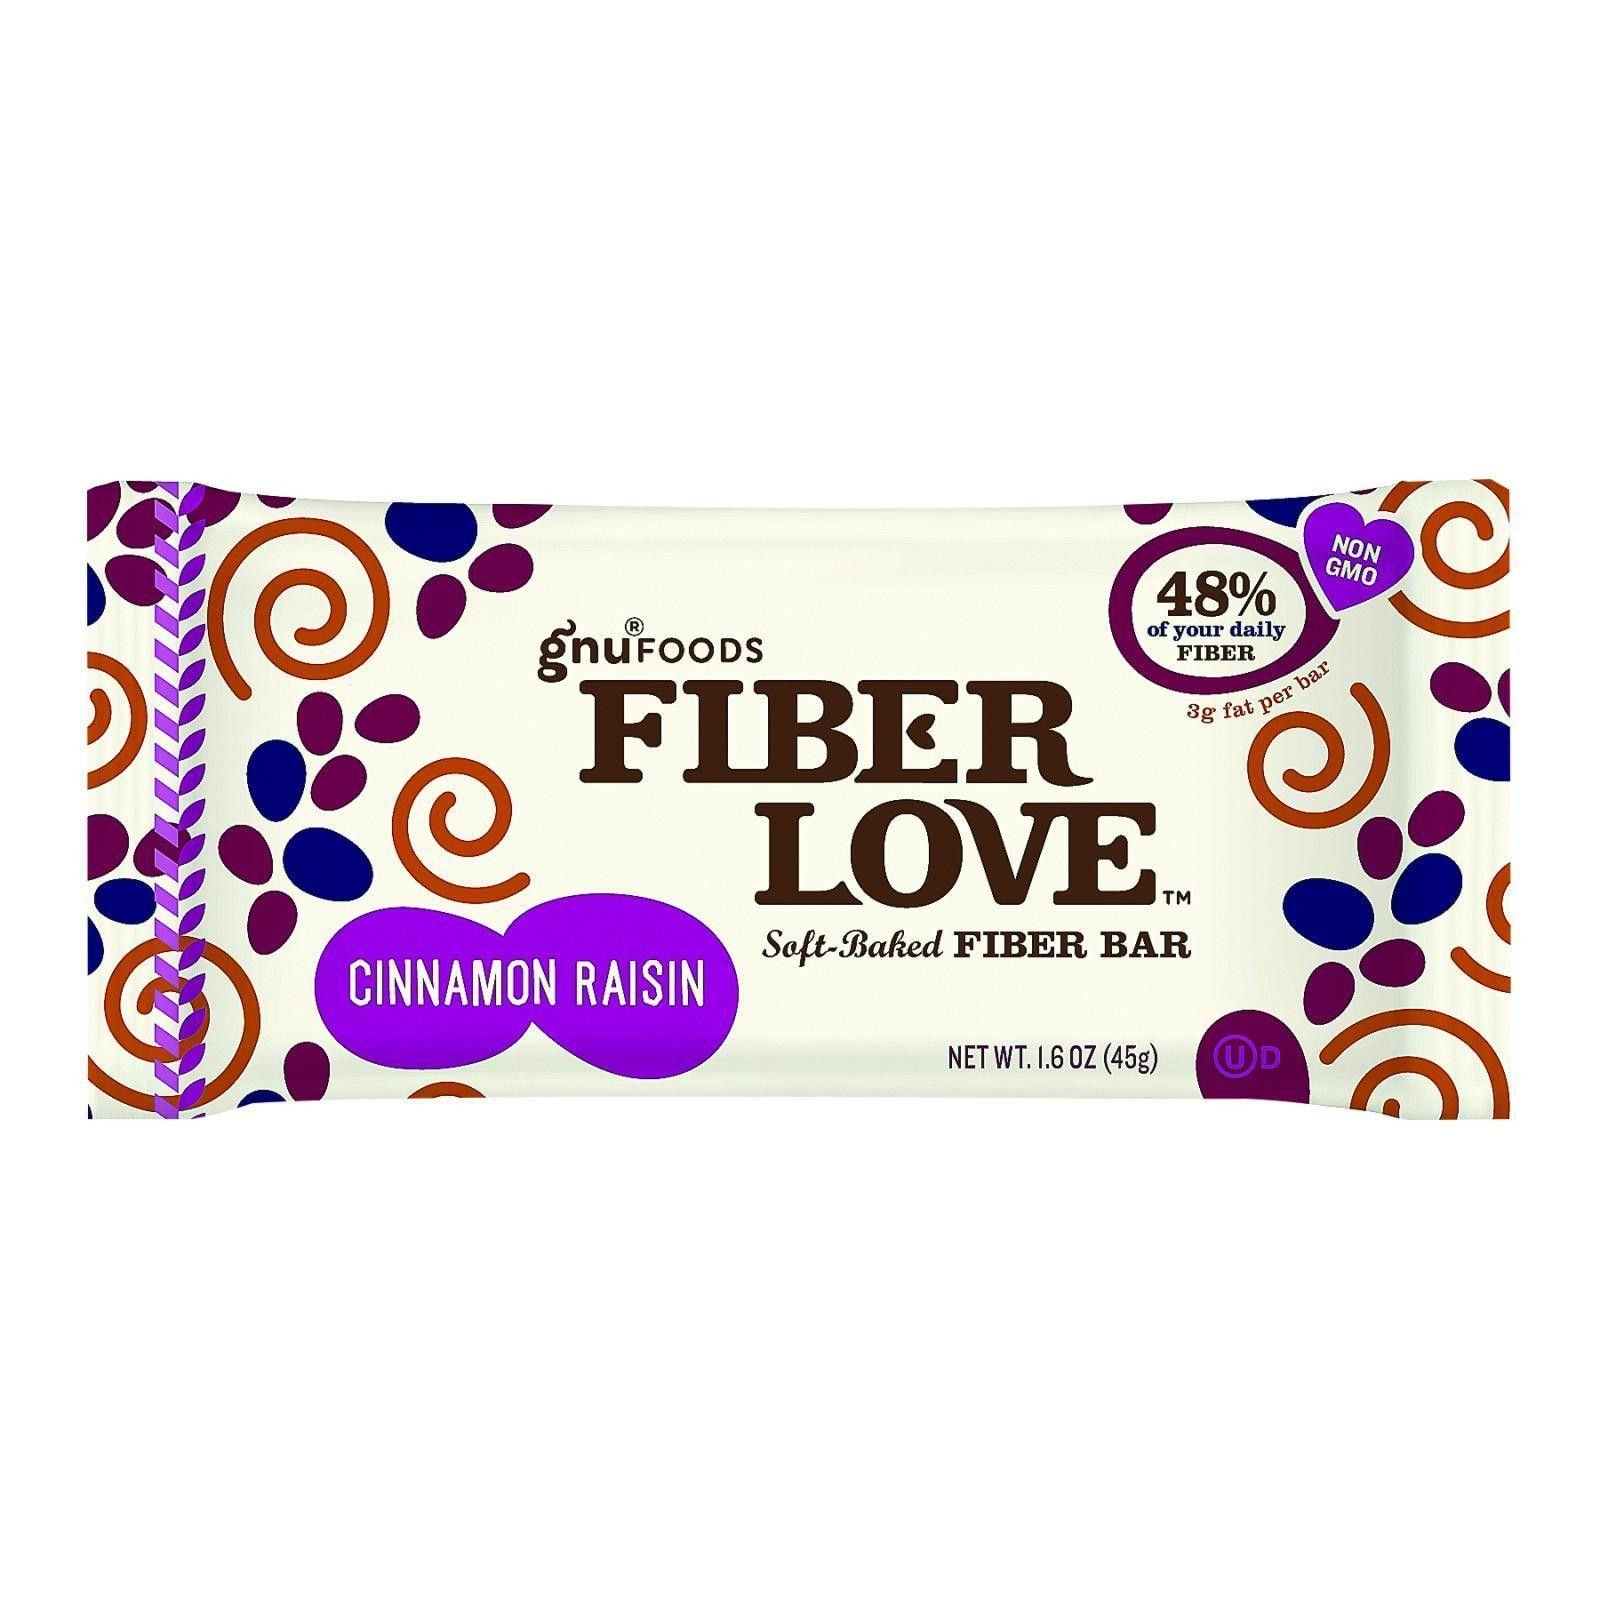 The oatmeal raisin cookie has met its match. So chewy and full of plump raisins, youell kiss your cookie jar goodbye. No Soy, Non-GMO, Weight Watchers, Vegan, Kosher Youeve never tasted fiber like thi